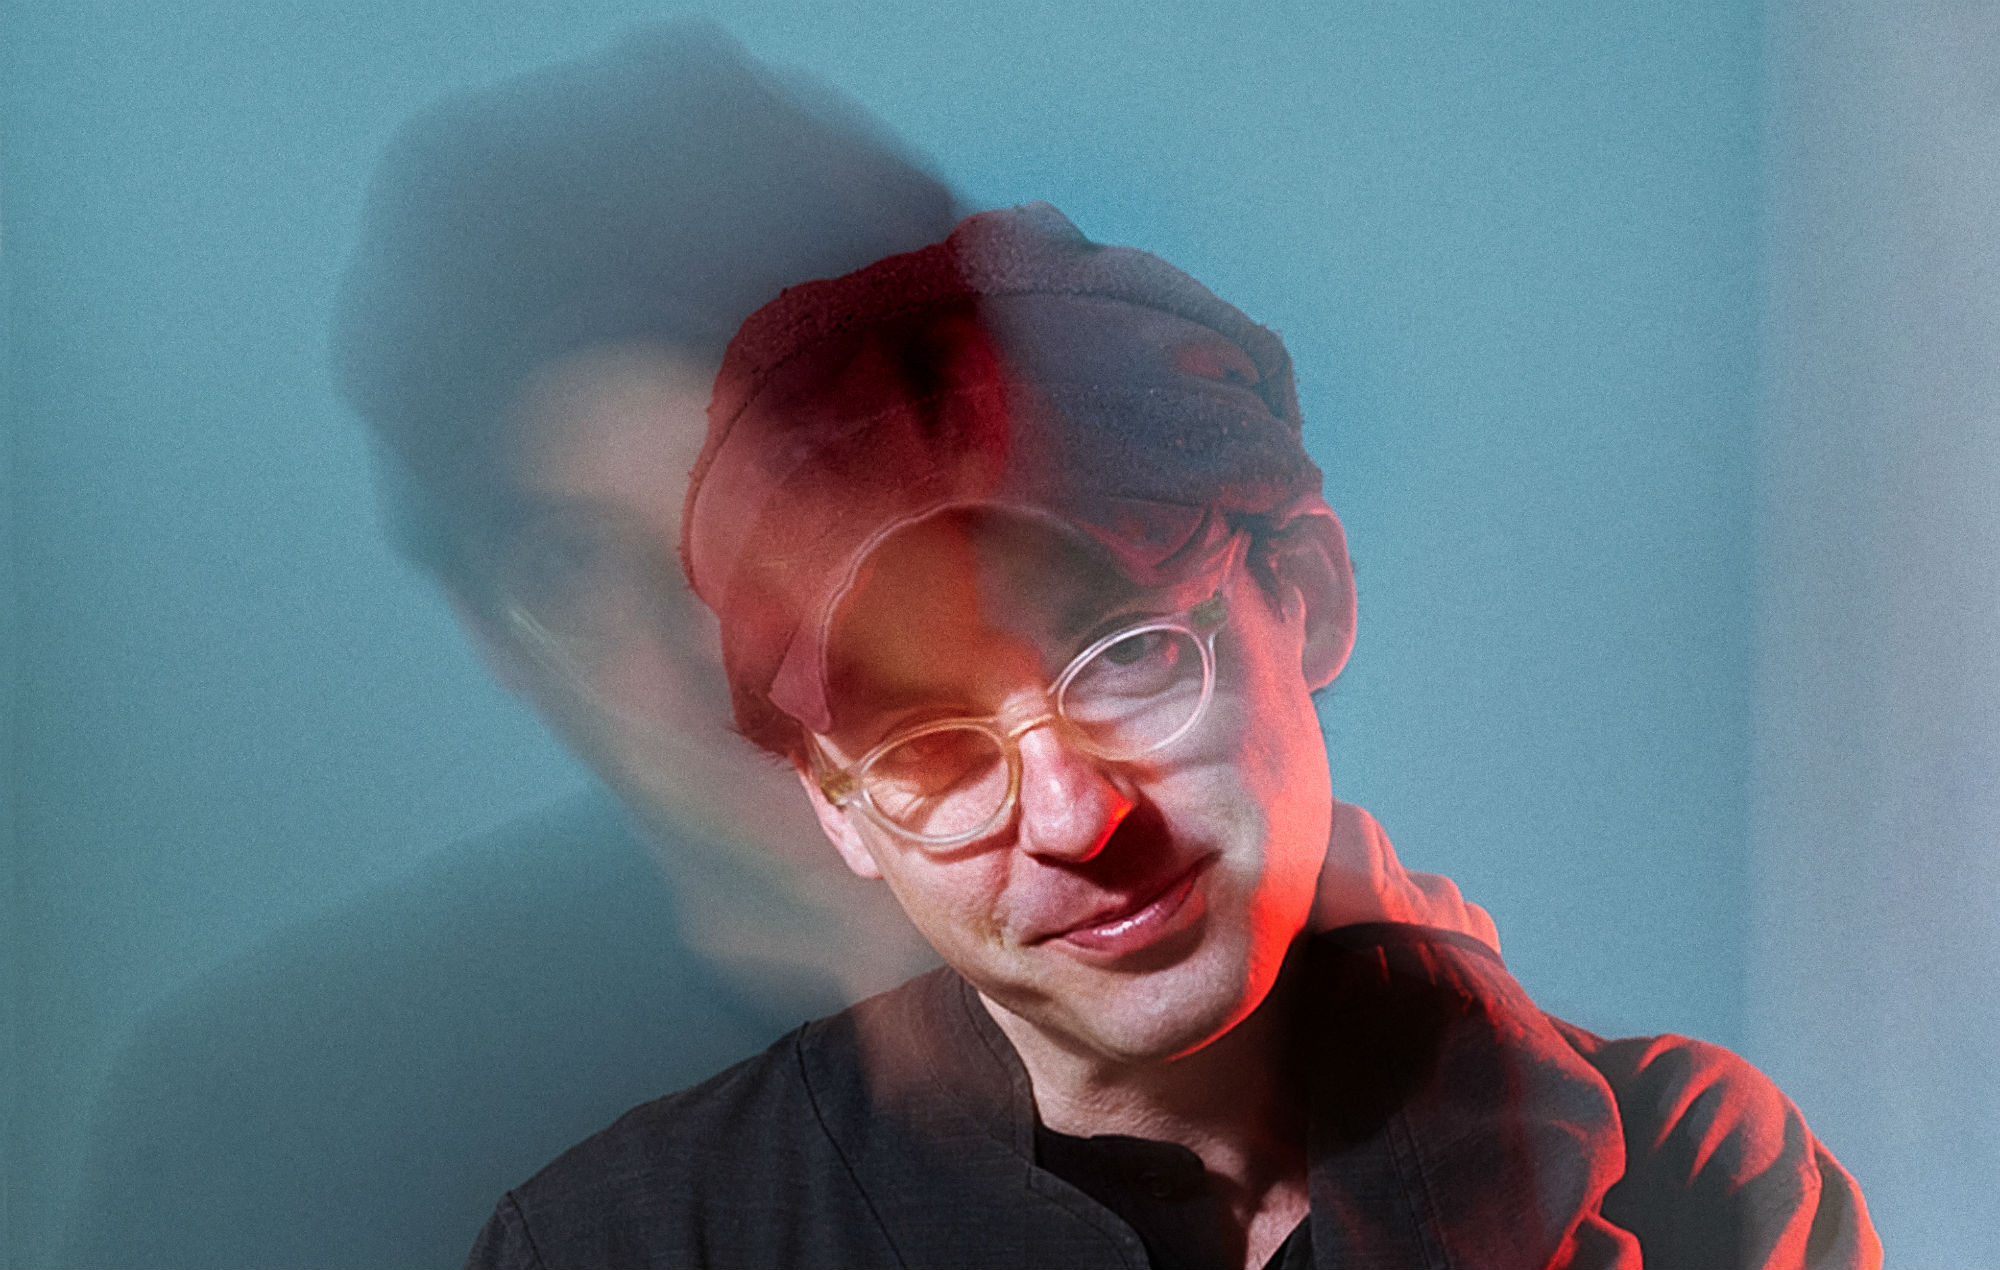 Listen to Clap Your Hands Say Yeah's 'Hesitating Nation' and 'Thousand Oaks'  from new album 'New Fragility'